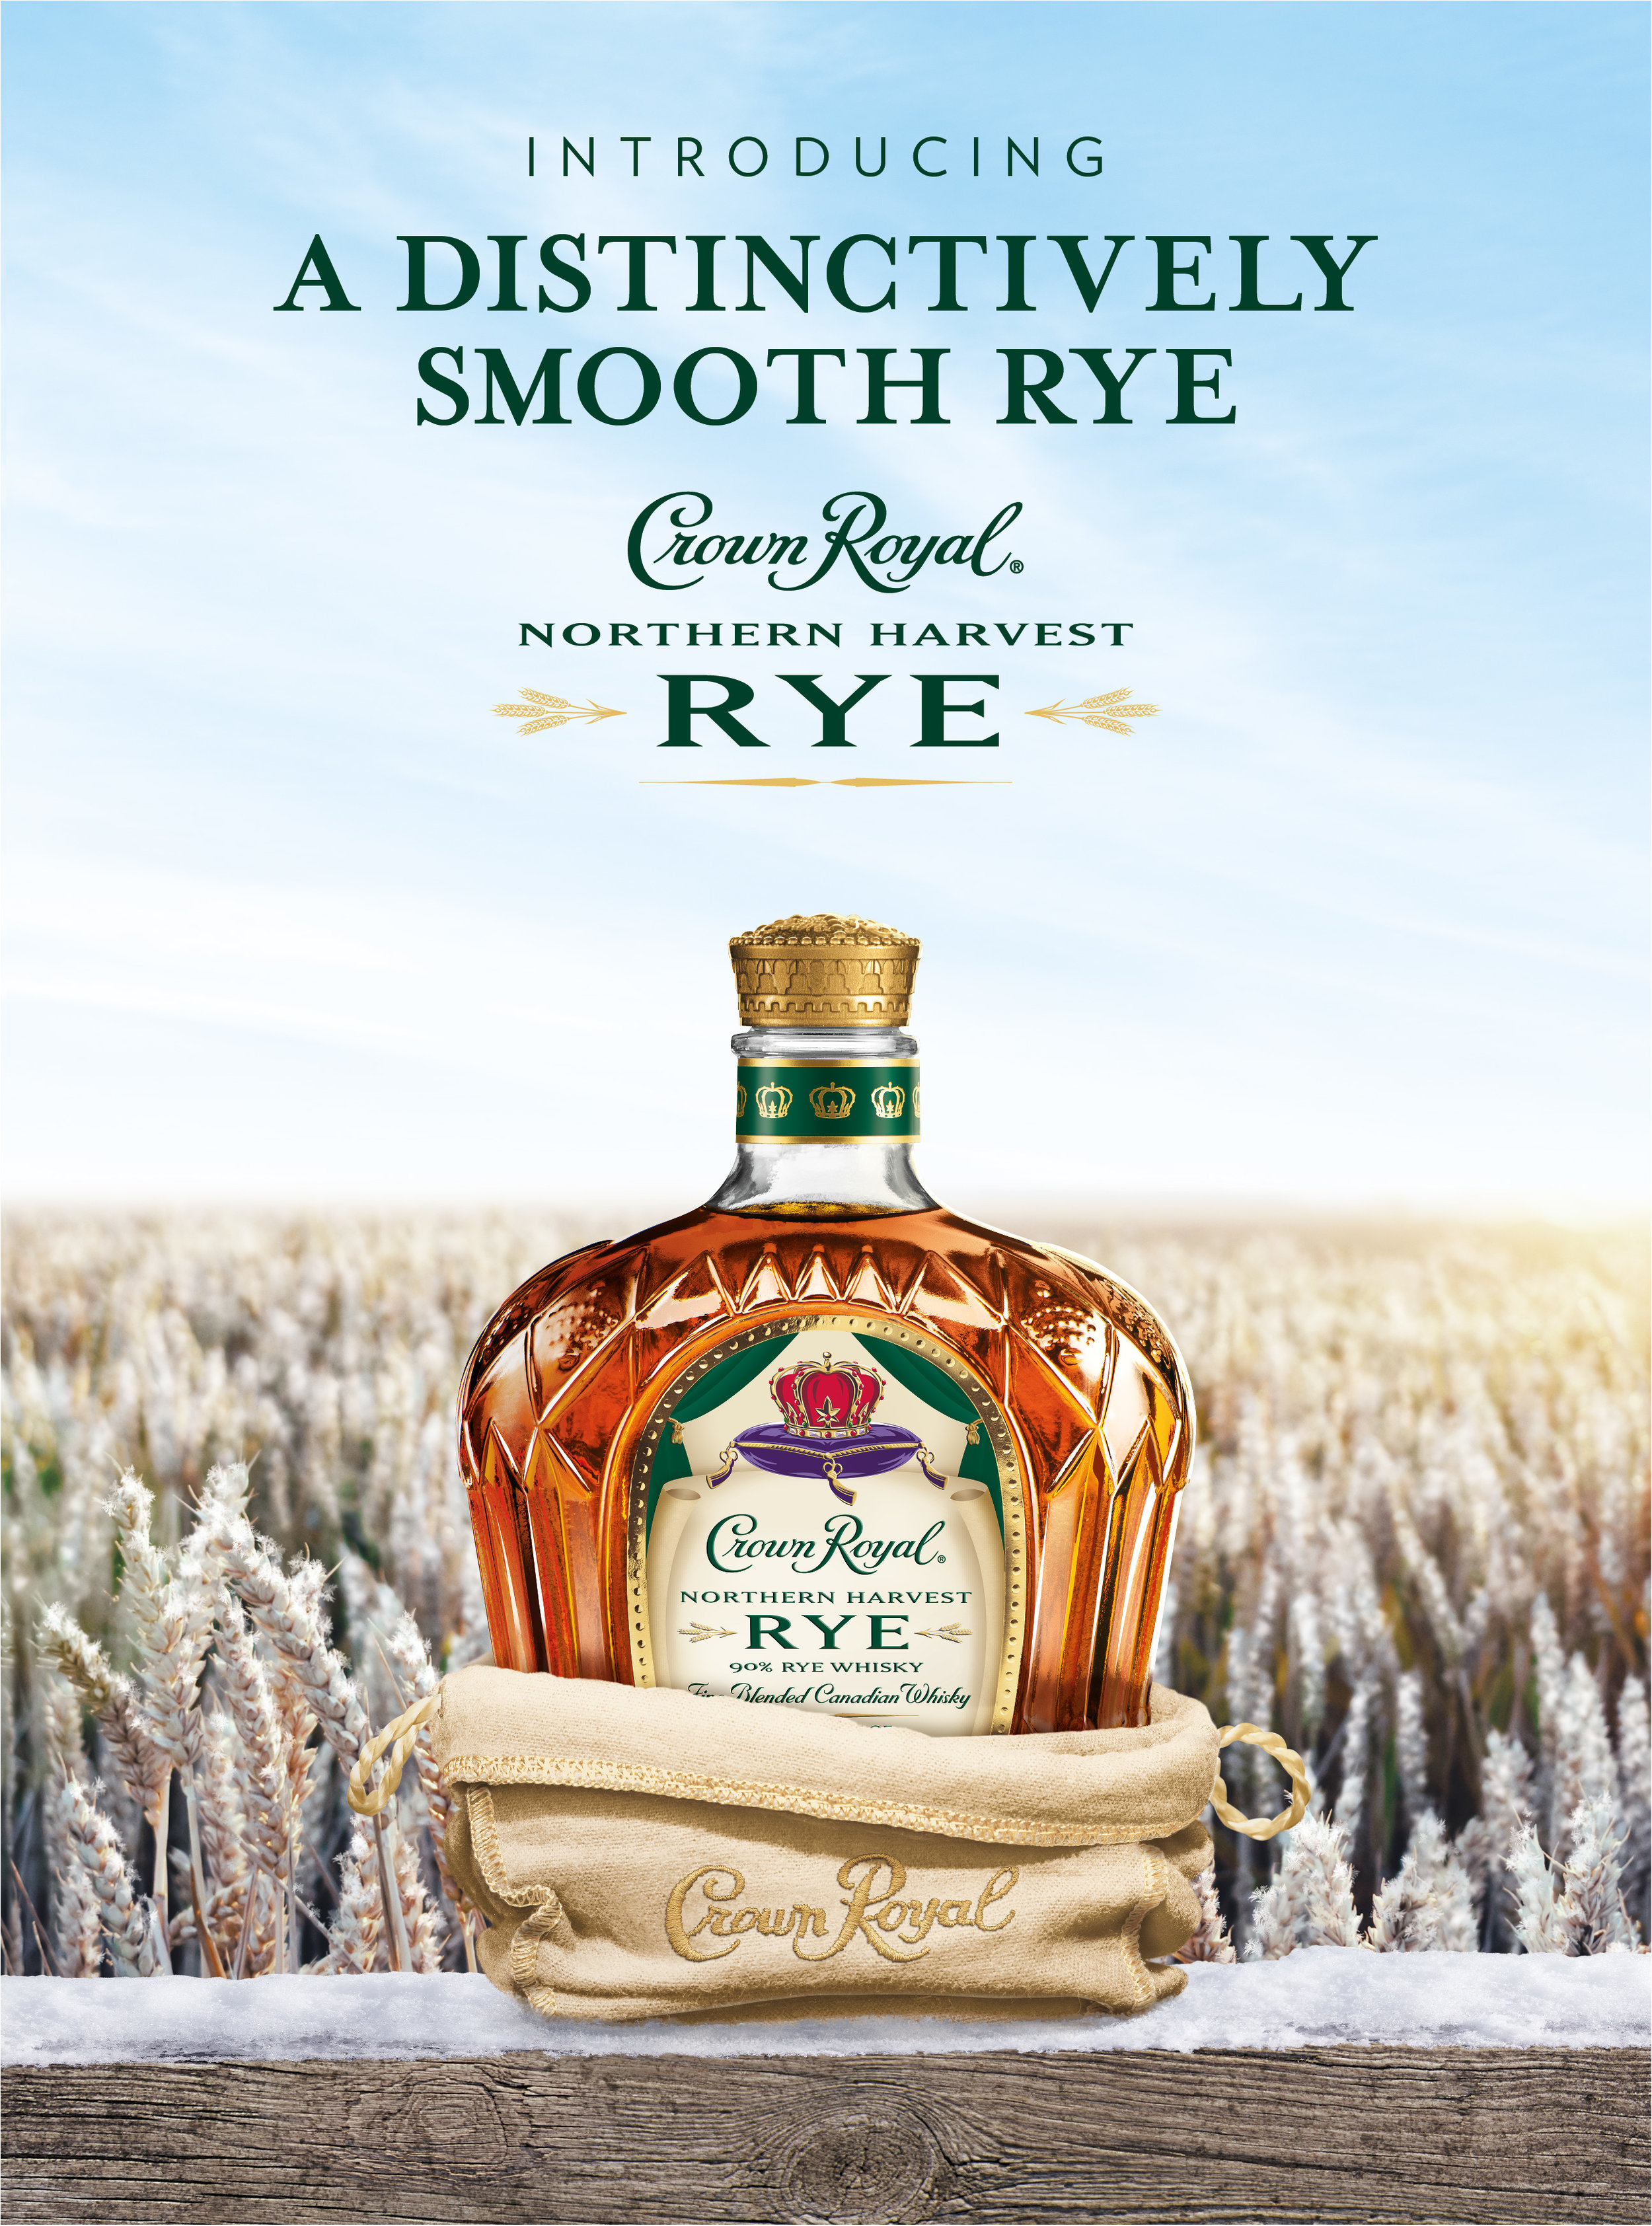 Launch creative for Crown Royal Northern Harvest Rye